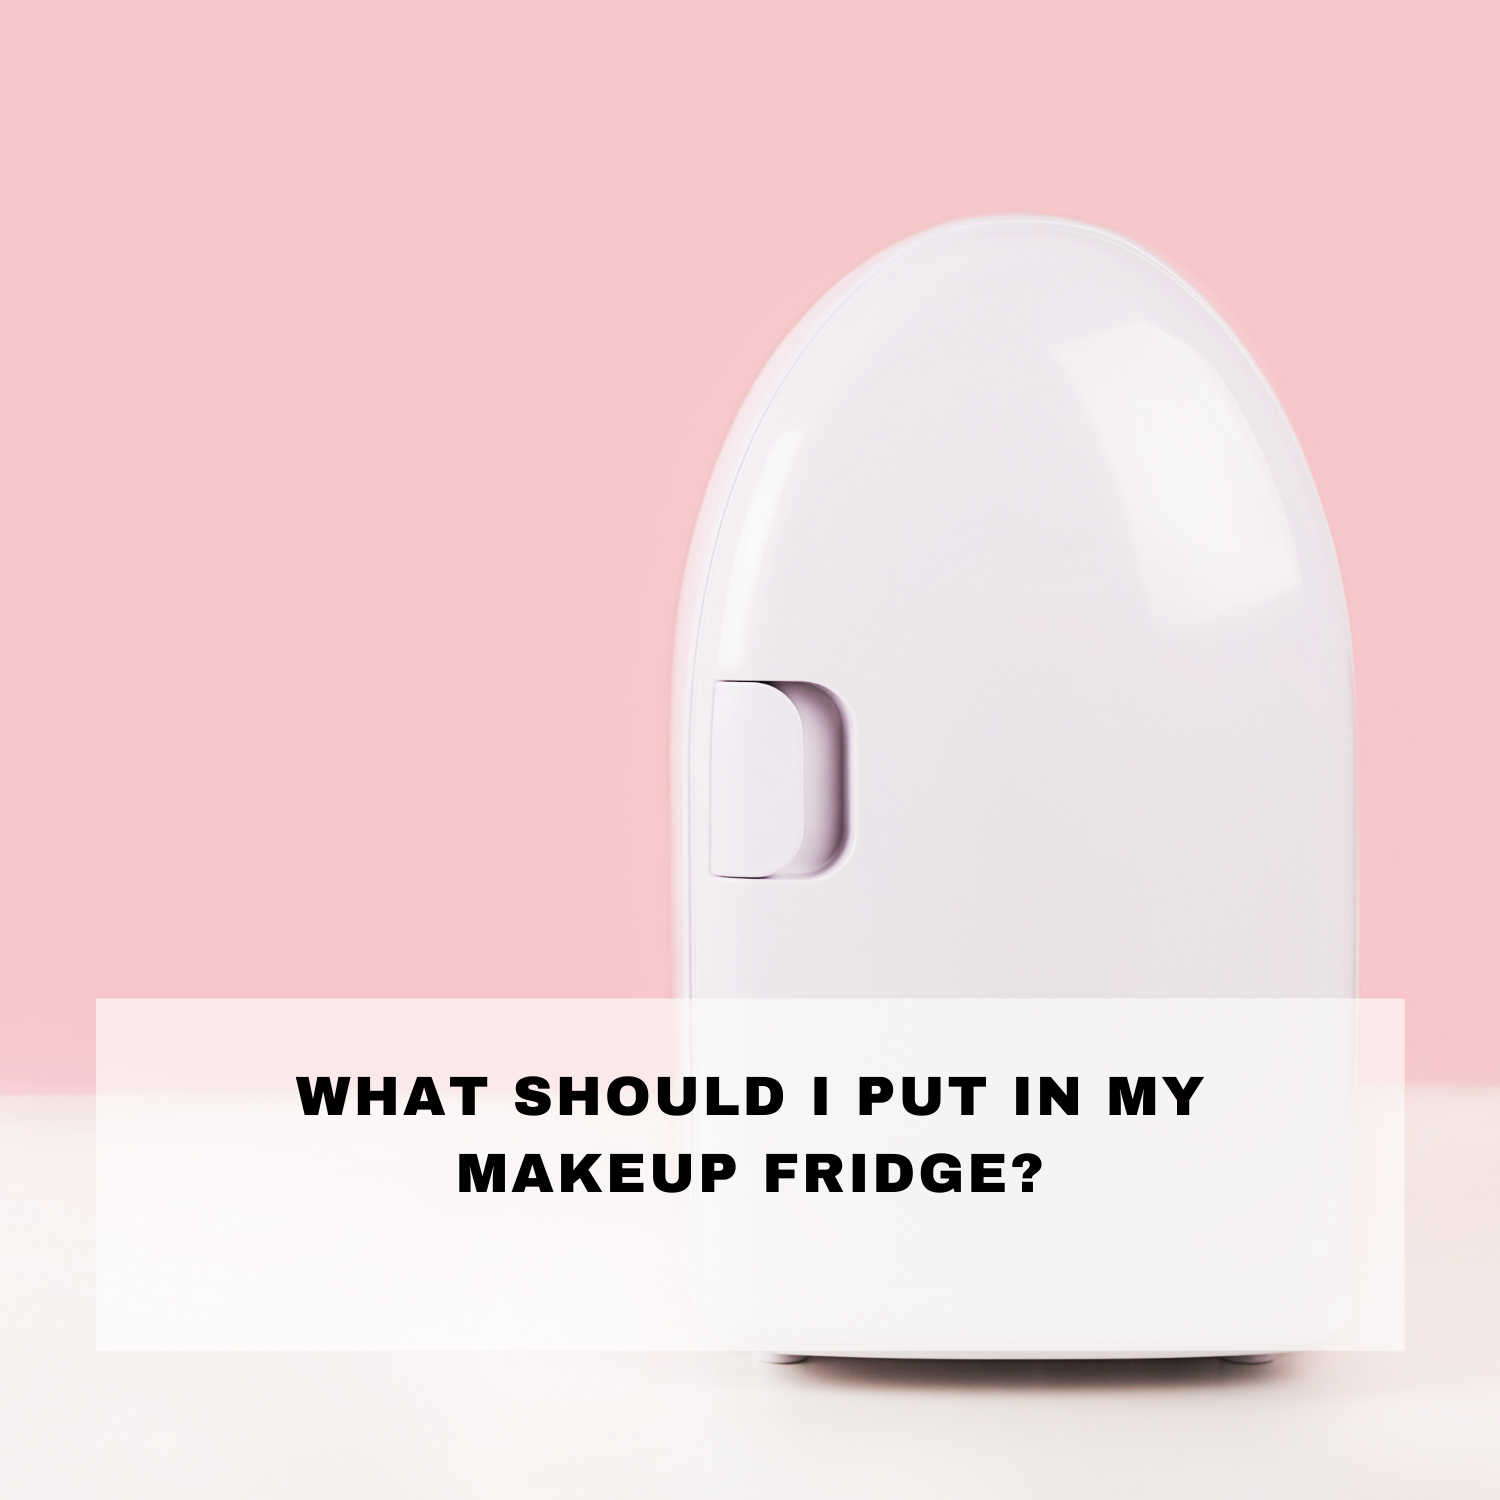 What should I put in my makeup fridge?